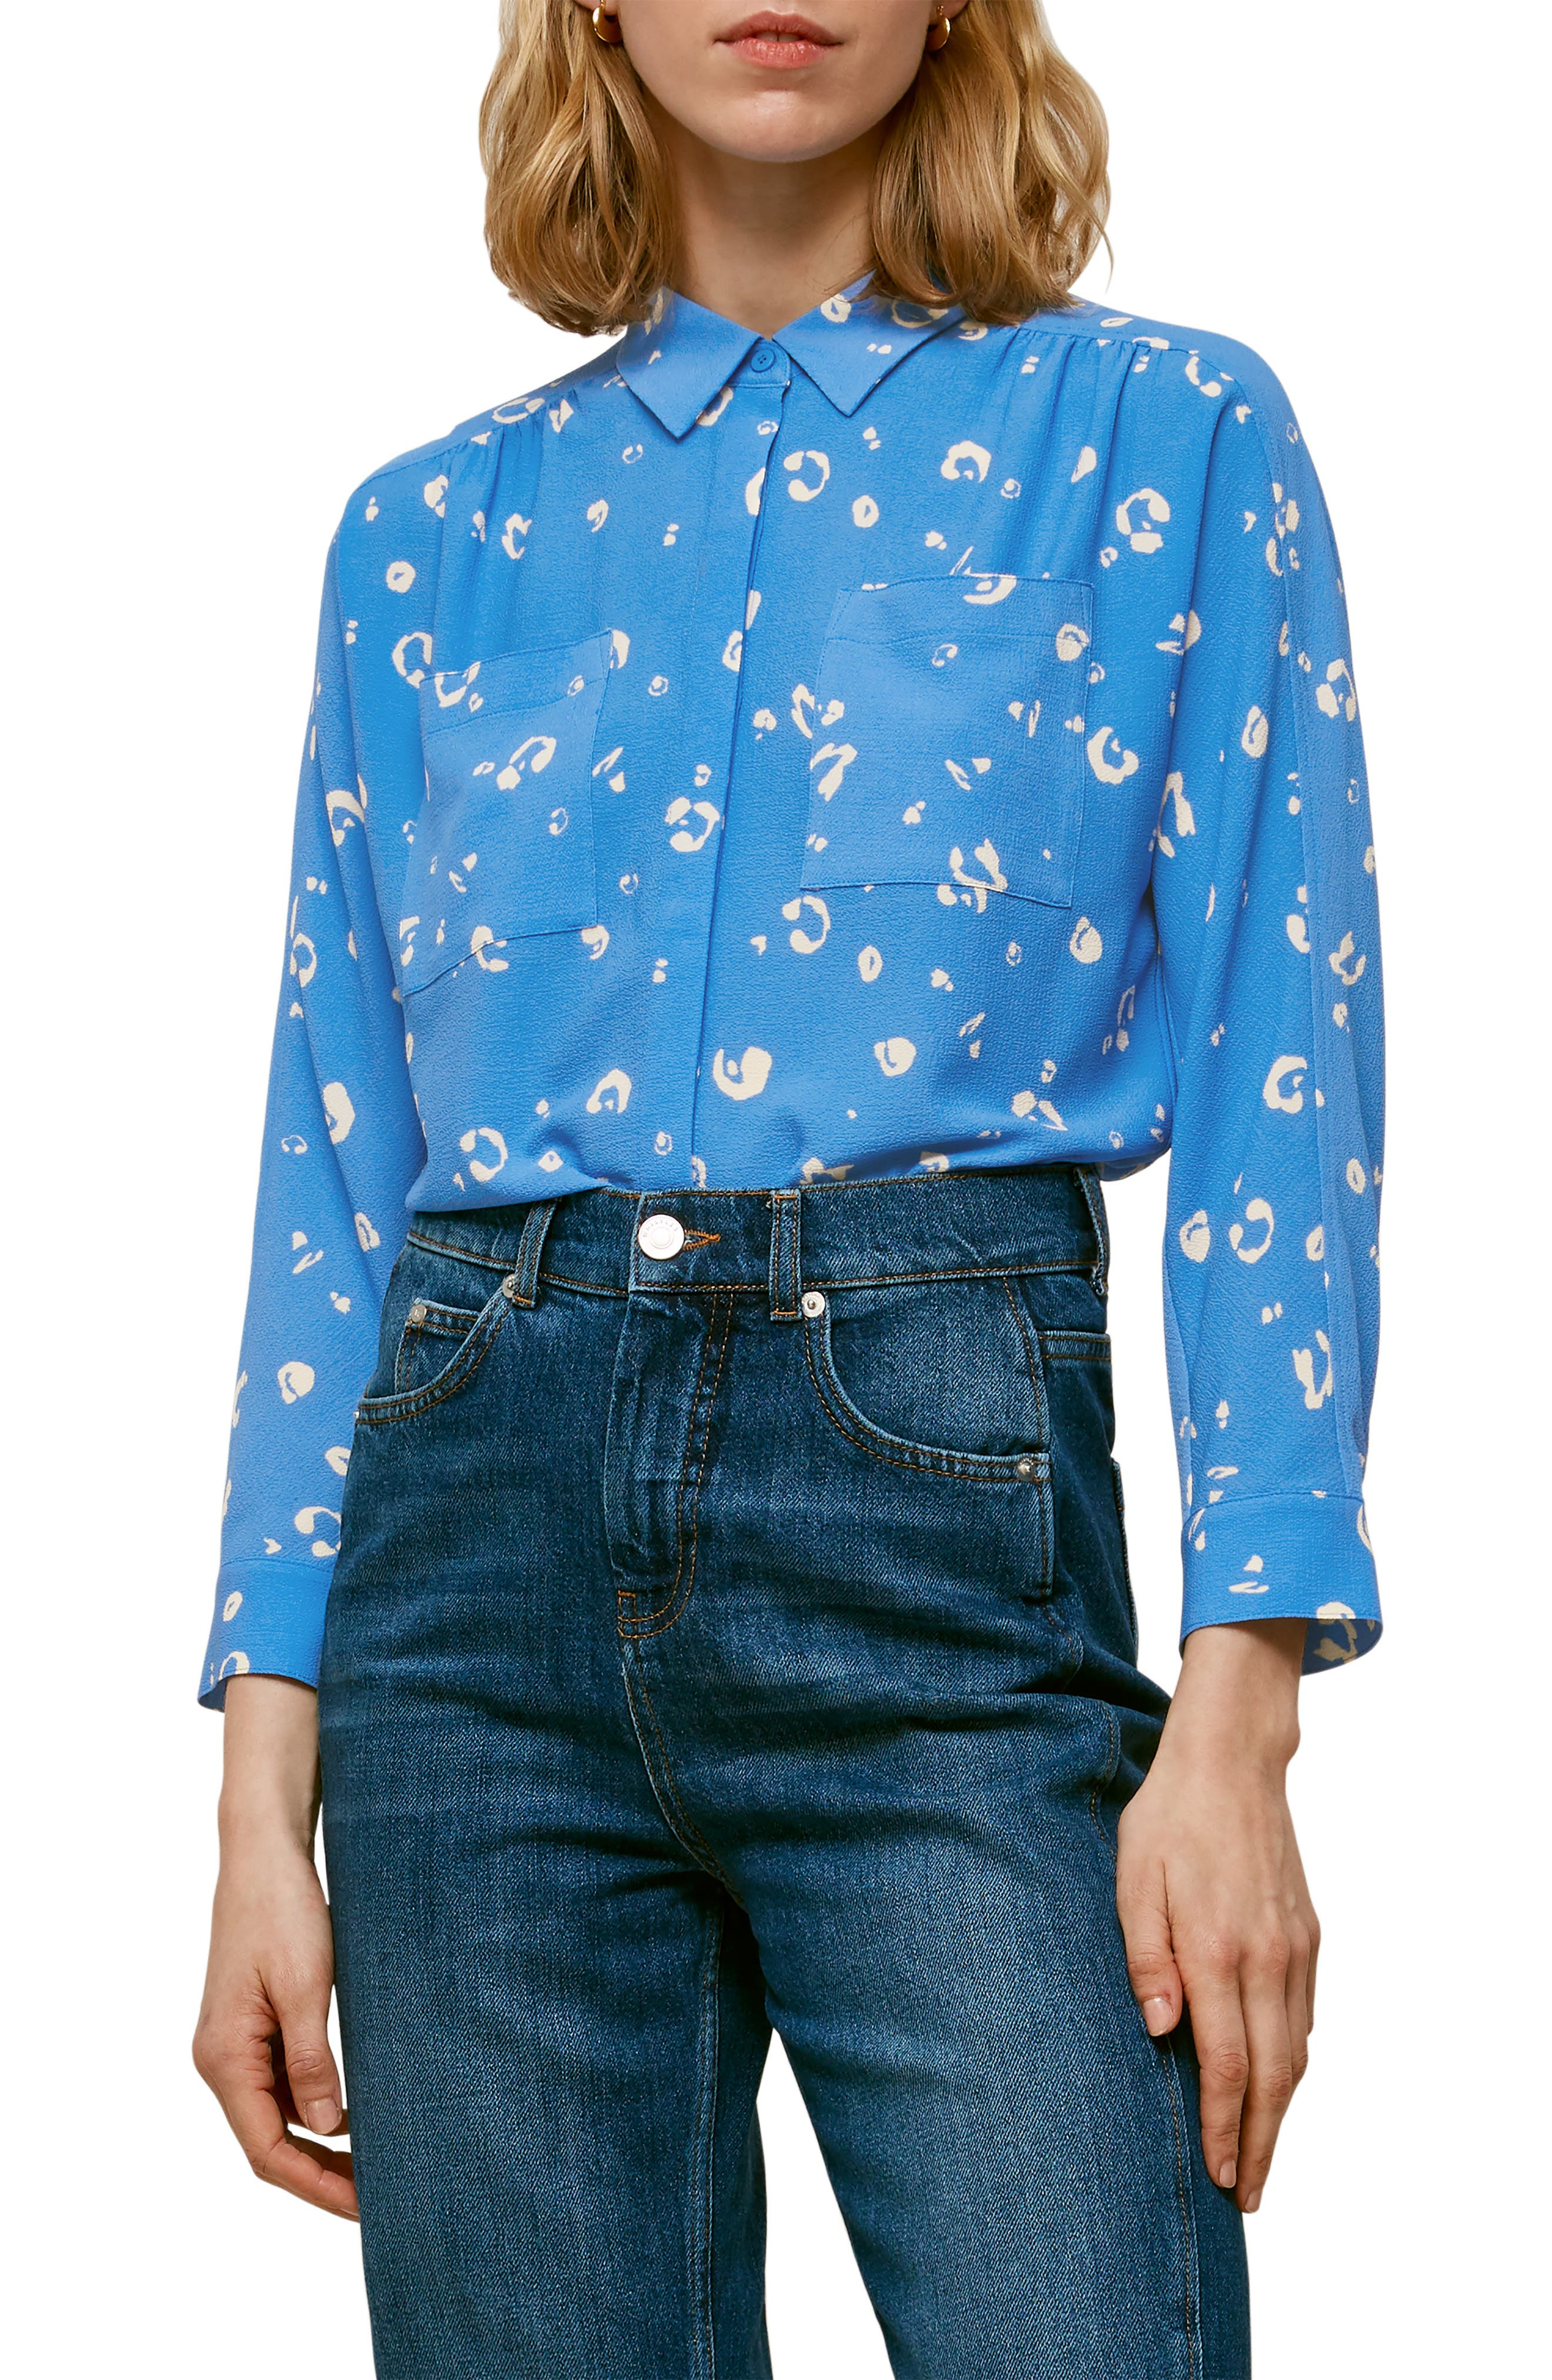 Abstract spots on a sky-blue crepe backdrop are a softened take on the fierce animal trend on this elevated shirt with a covered placket and gathered accents. Style Name: Whistles Watercolor Animal Print Shirt. Style Number: 6020948. Available in stores.